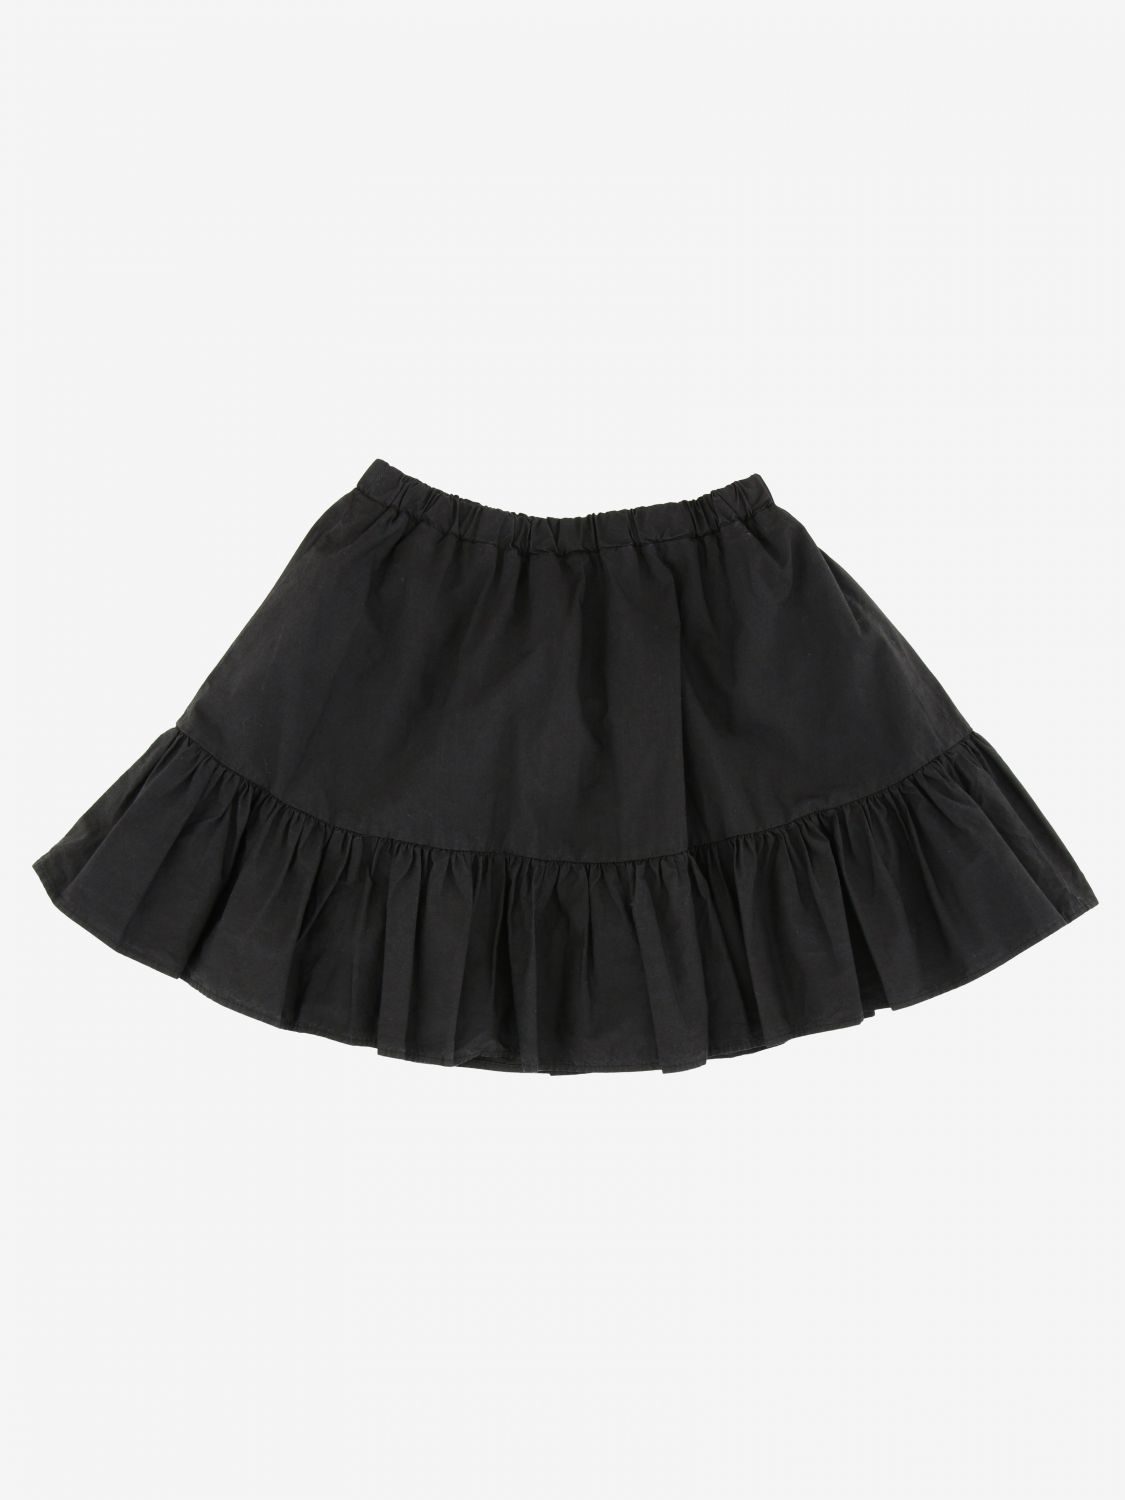 Msgm Kids skirt with flounce multicolor 2